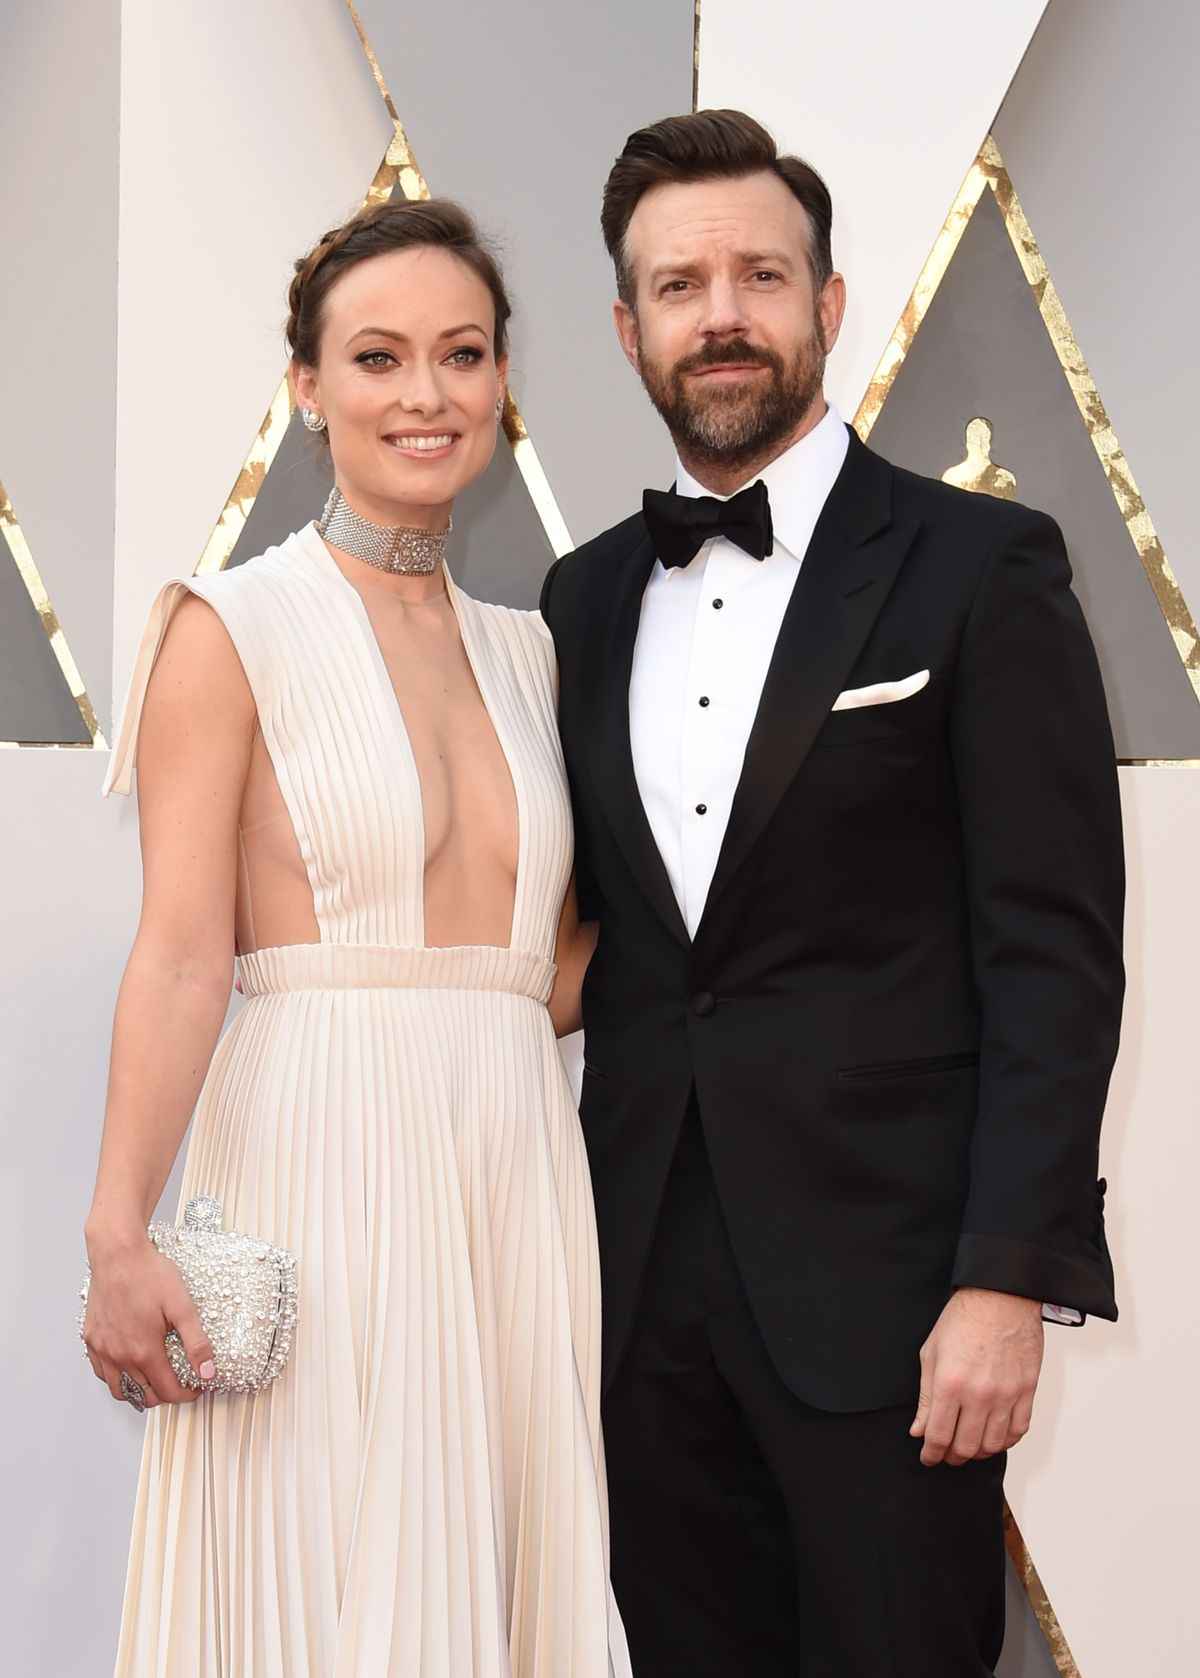 Olivia Wilde (L) and Jason Sudeikis arrive on the red carpet for the 88th Oscars on February 28, 2016 in Hollywood, California. AFP PHOTO / VALERIE MACON / AFP / VALERIE MACON (Photo credit should read VALERIE MACON/AFP/Getty Images)